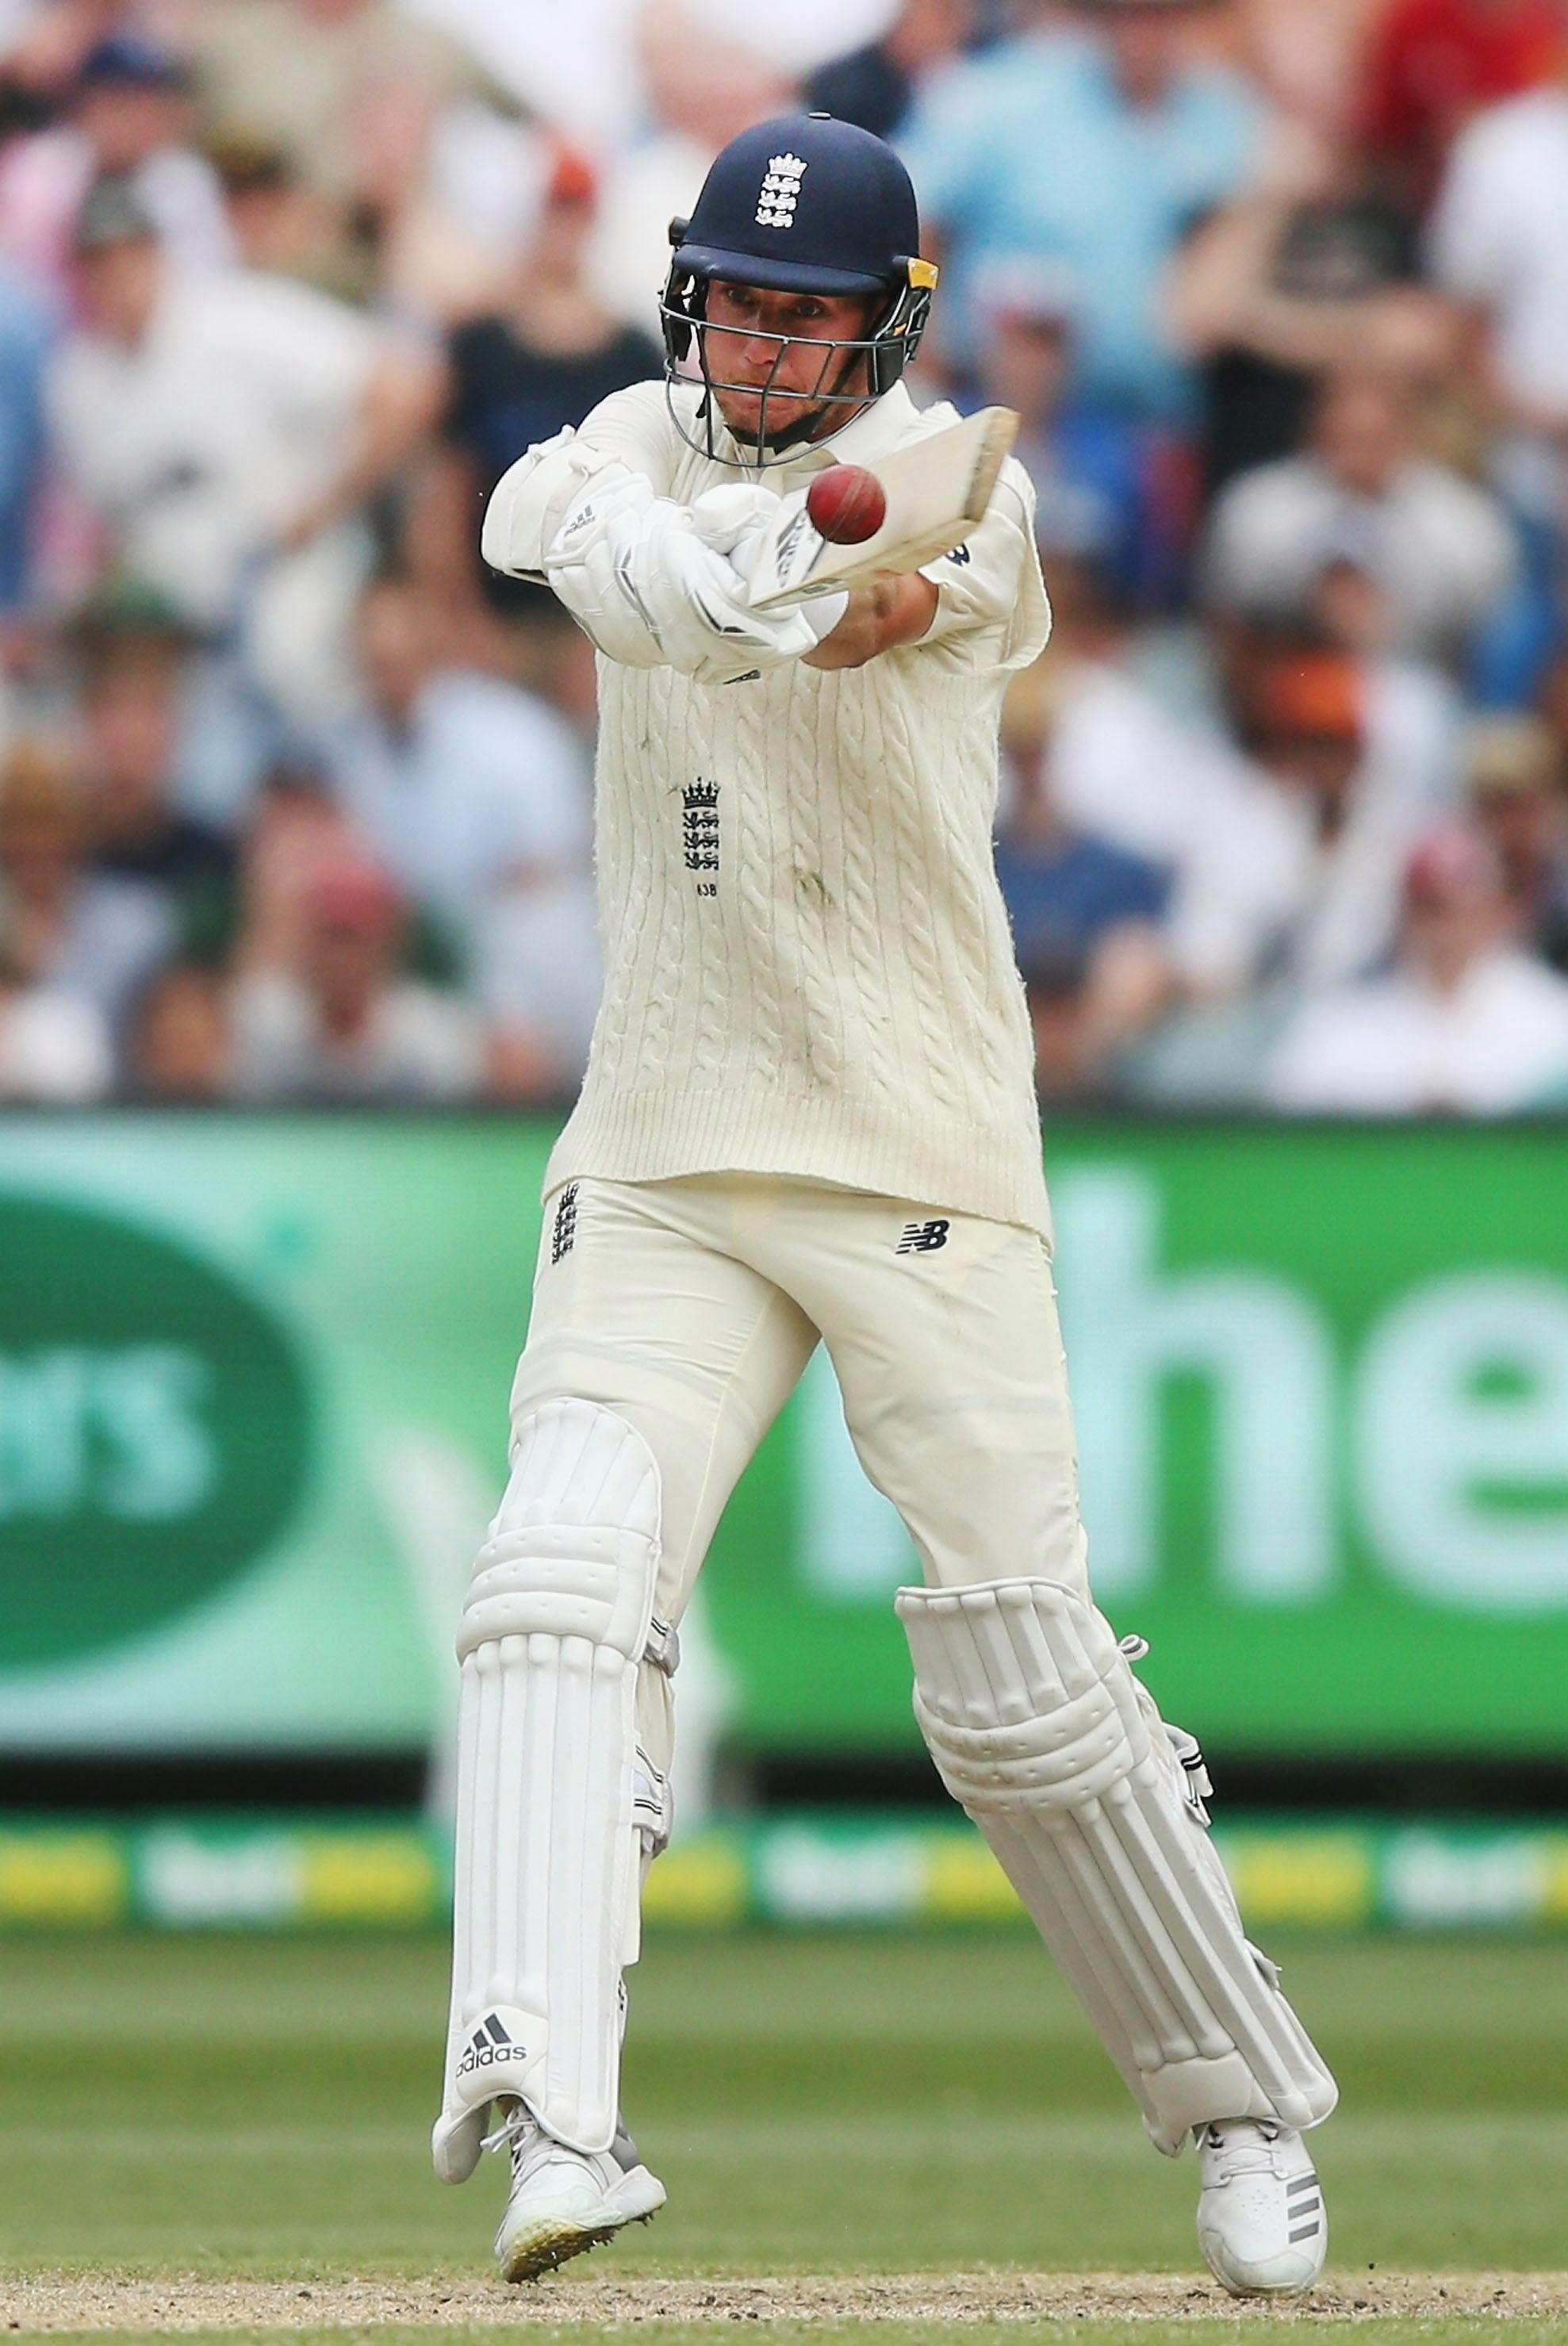 Stuart pictured in the Fourth Test Match in the 2017/18 Ashes series